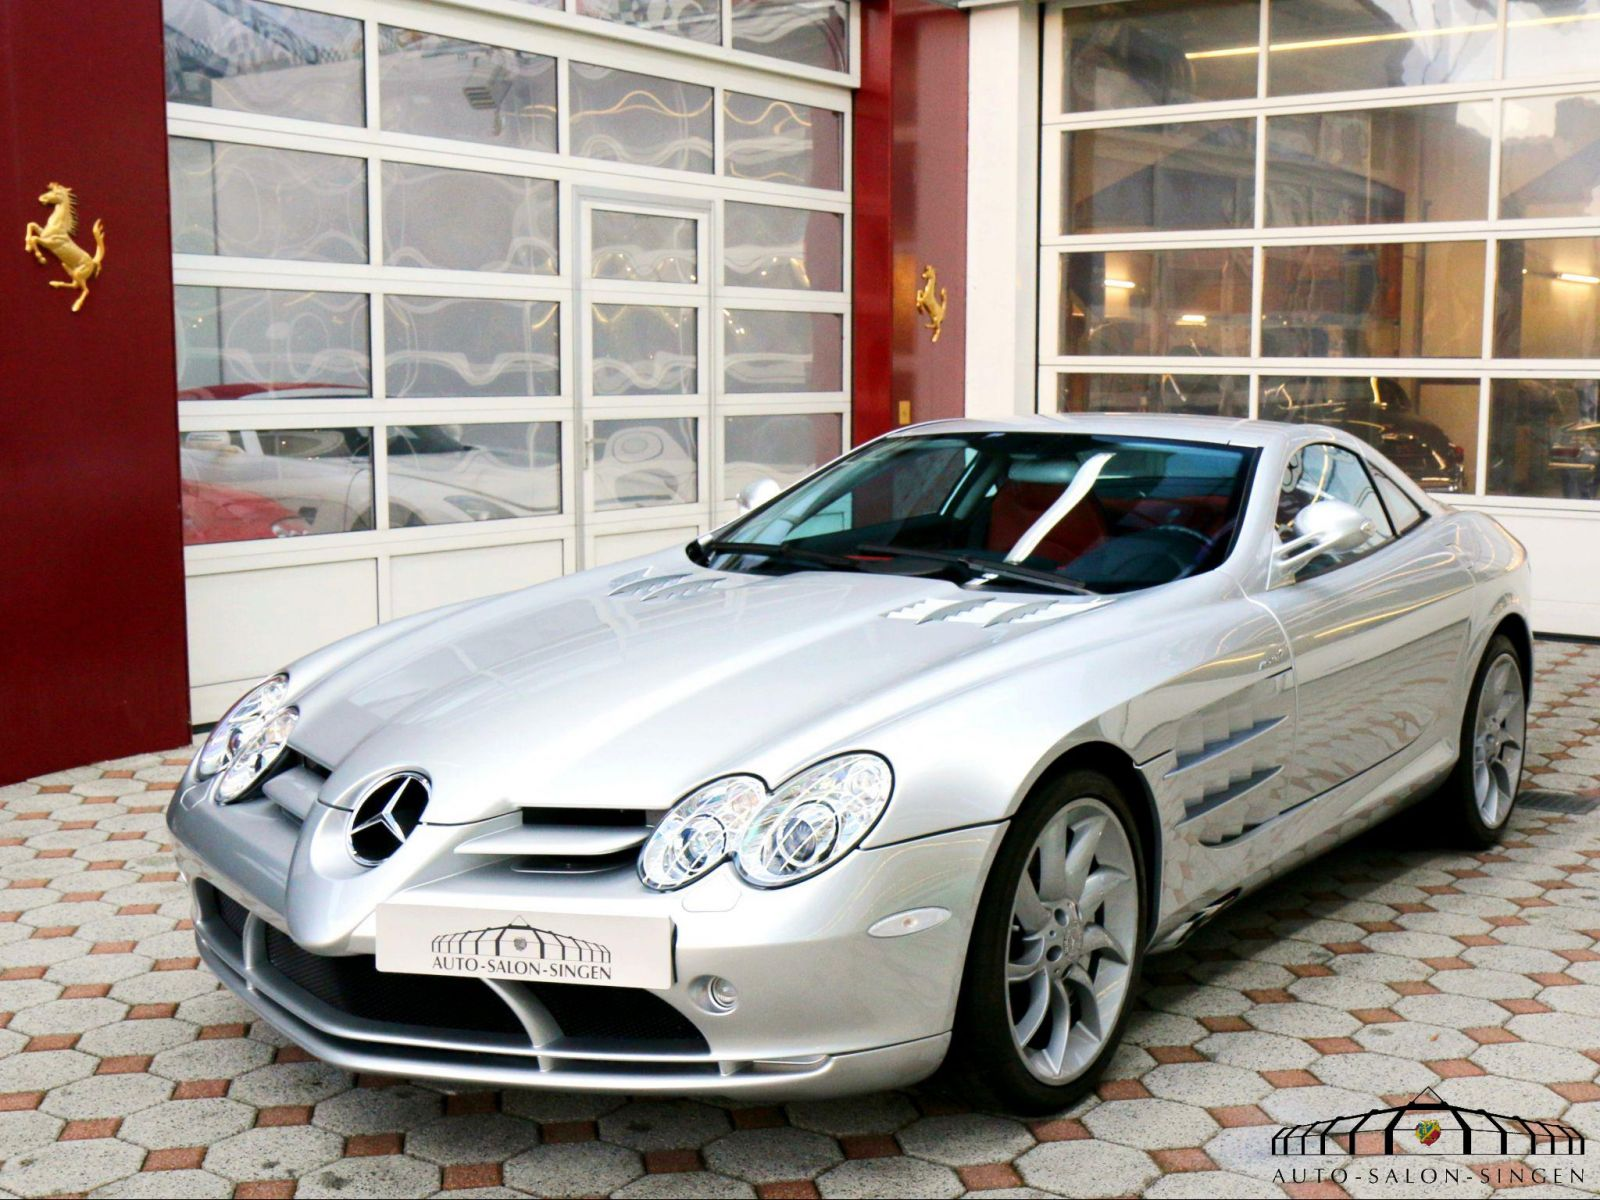 Mercedes benz slr mclaren coup auto salon singen for Mercedes benz slr mclaren price